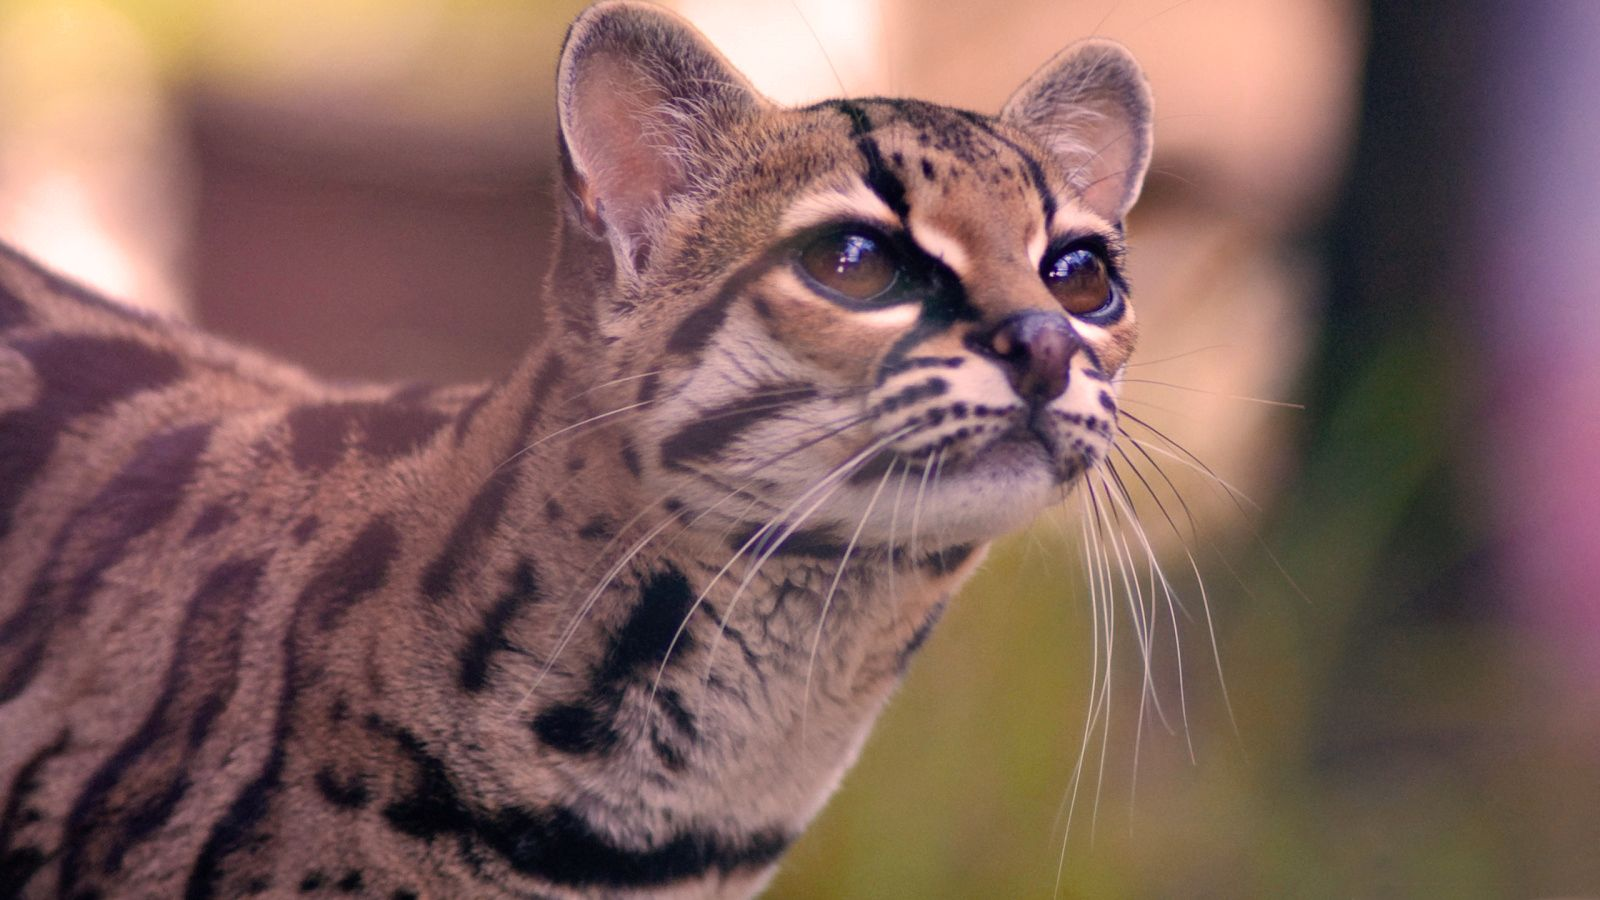 The Pantanal cat is a small feline of tropical South